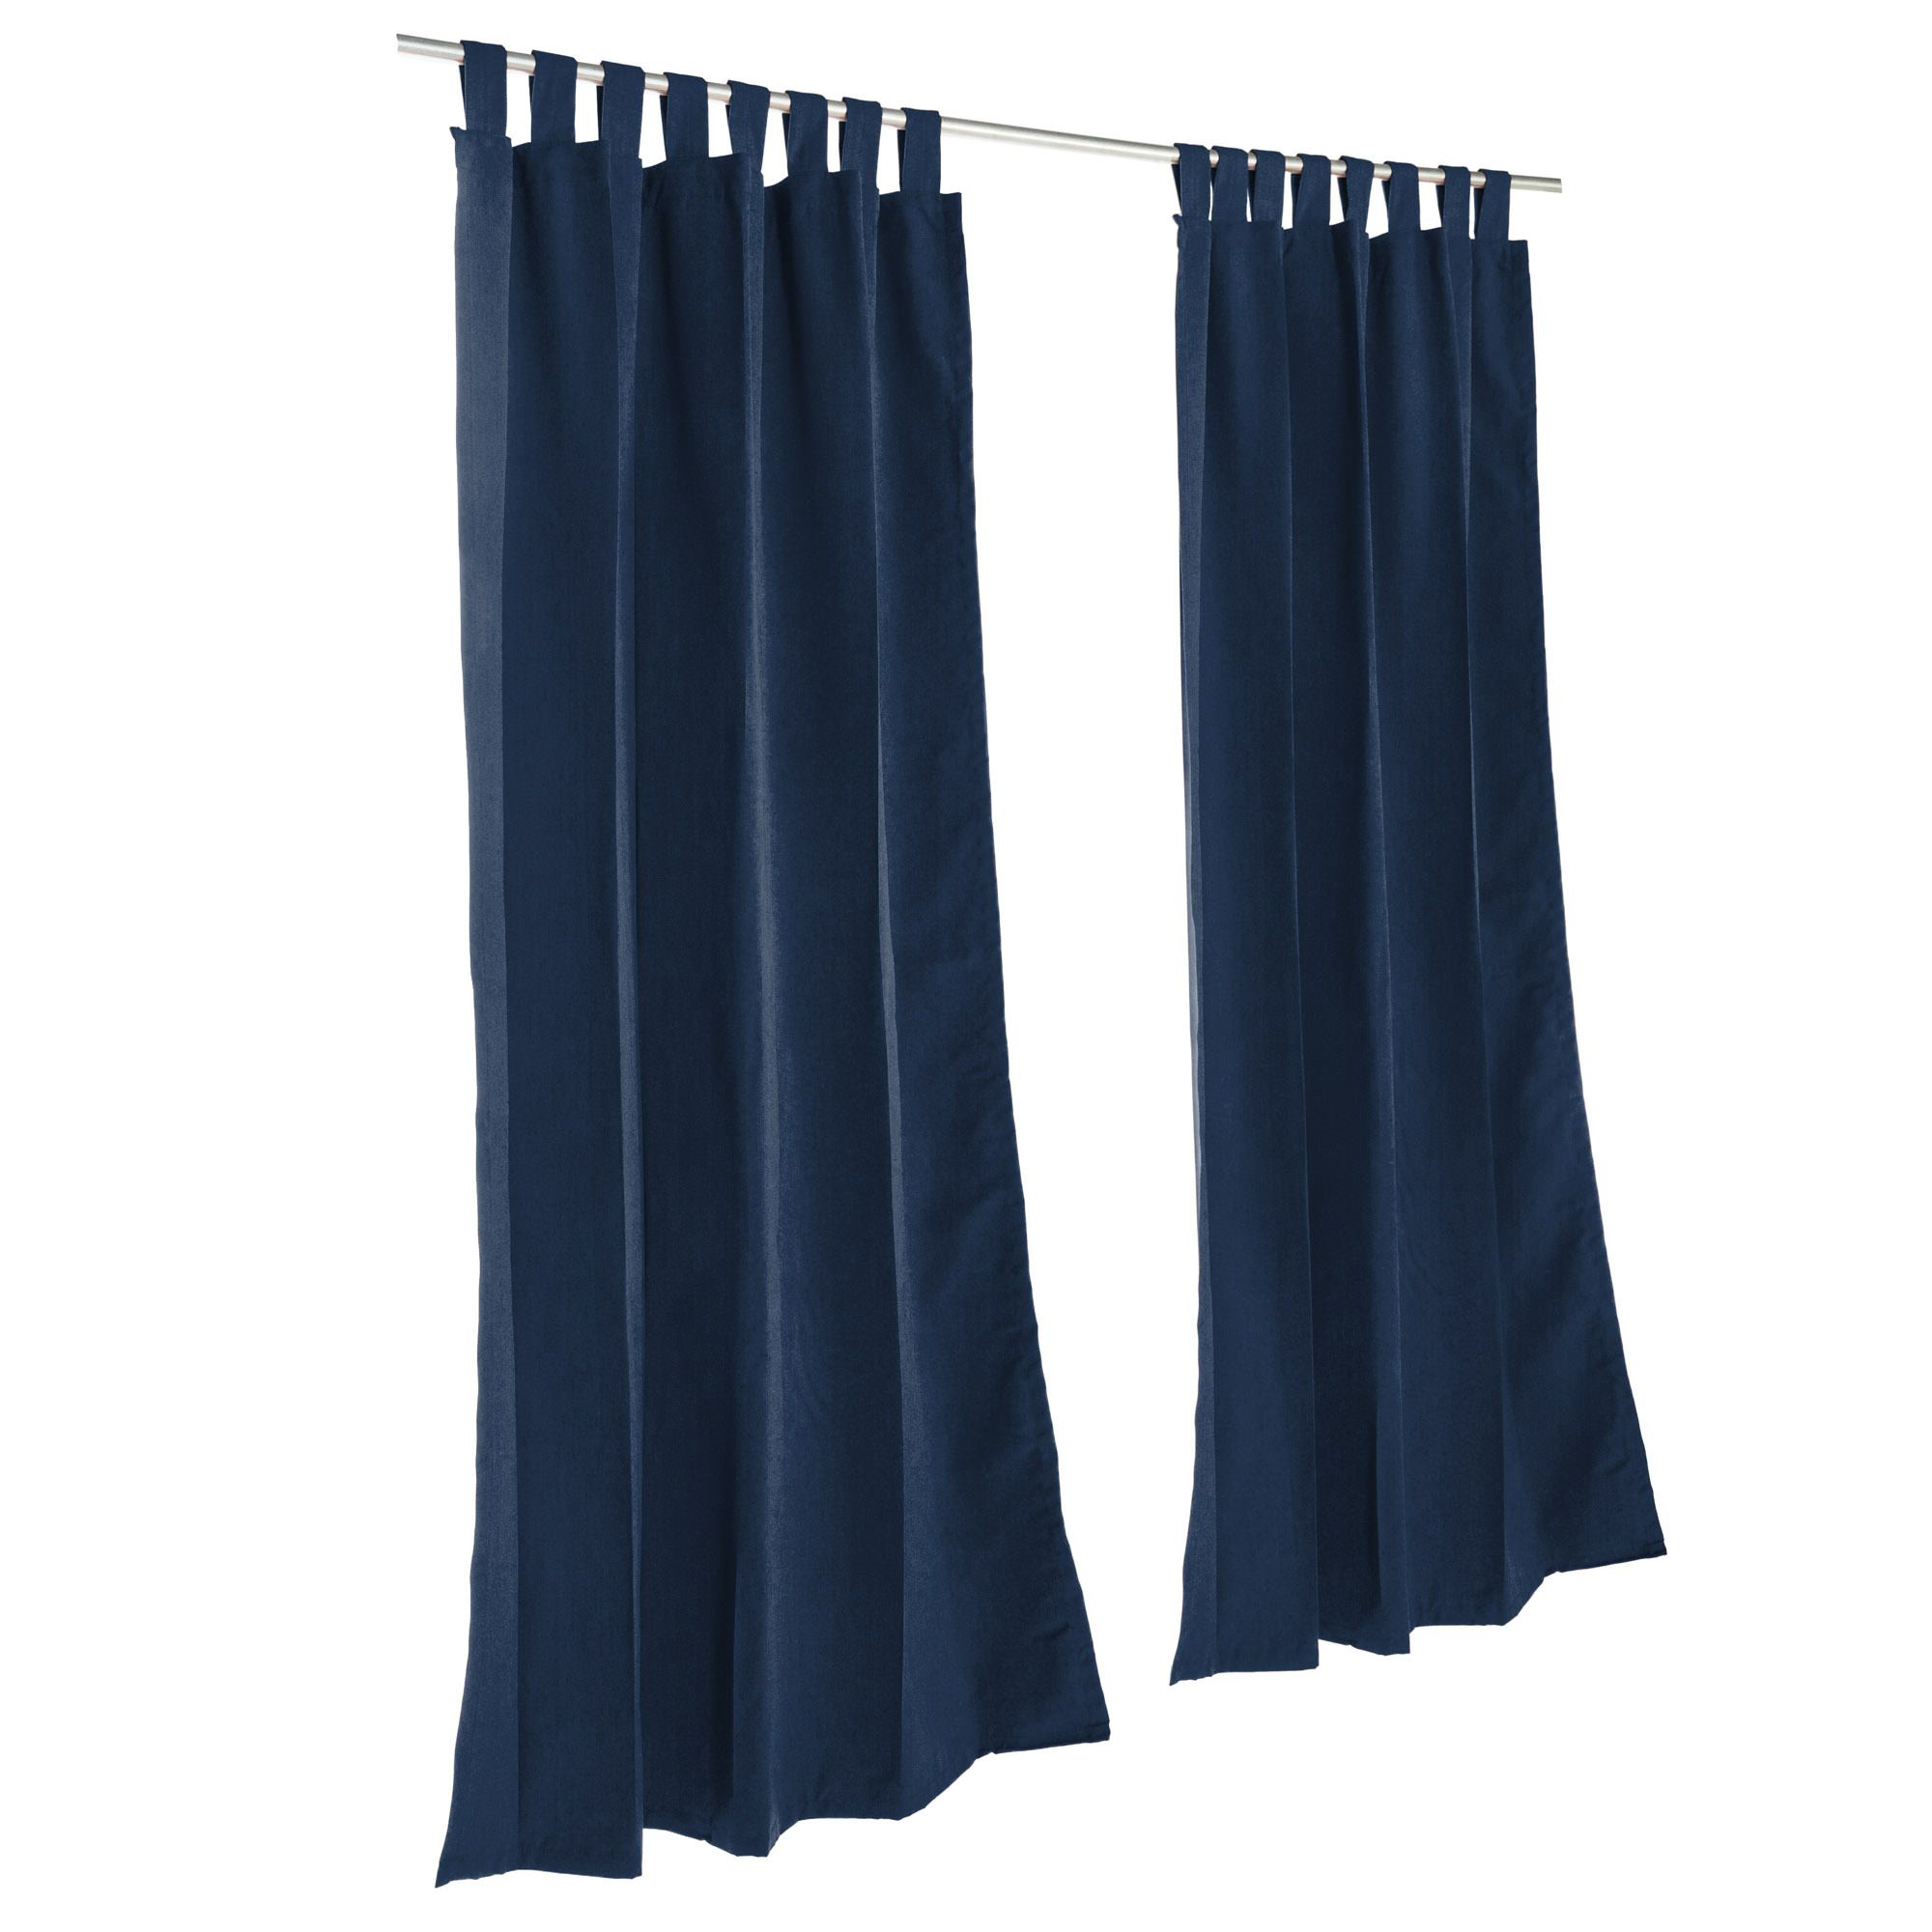 Navy Sunbrella Outdoor Curtain with Tabs by Essentials by DFO